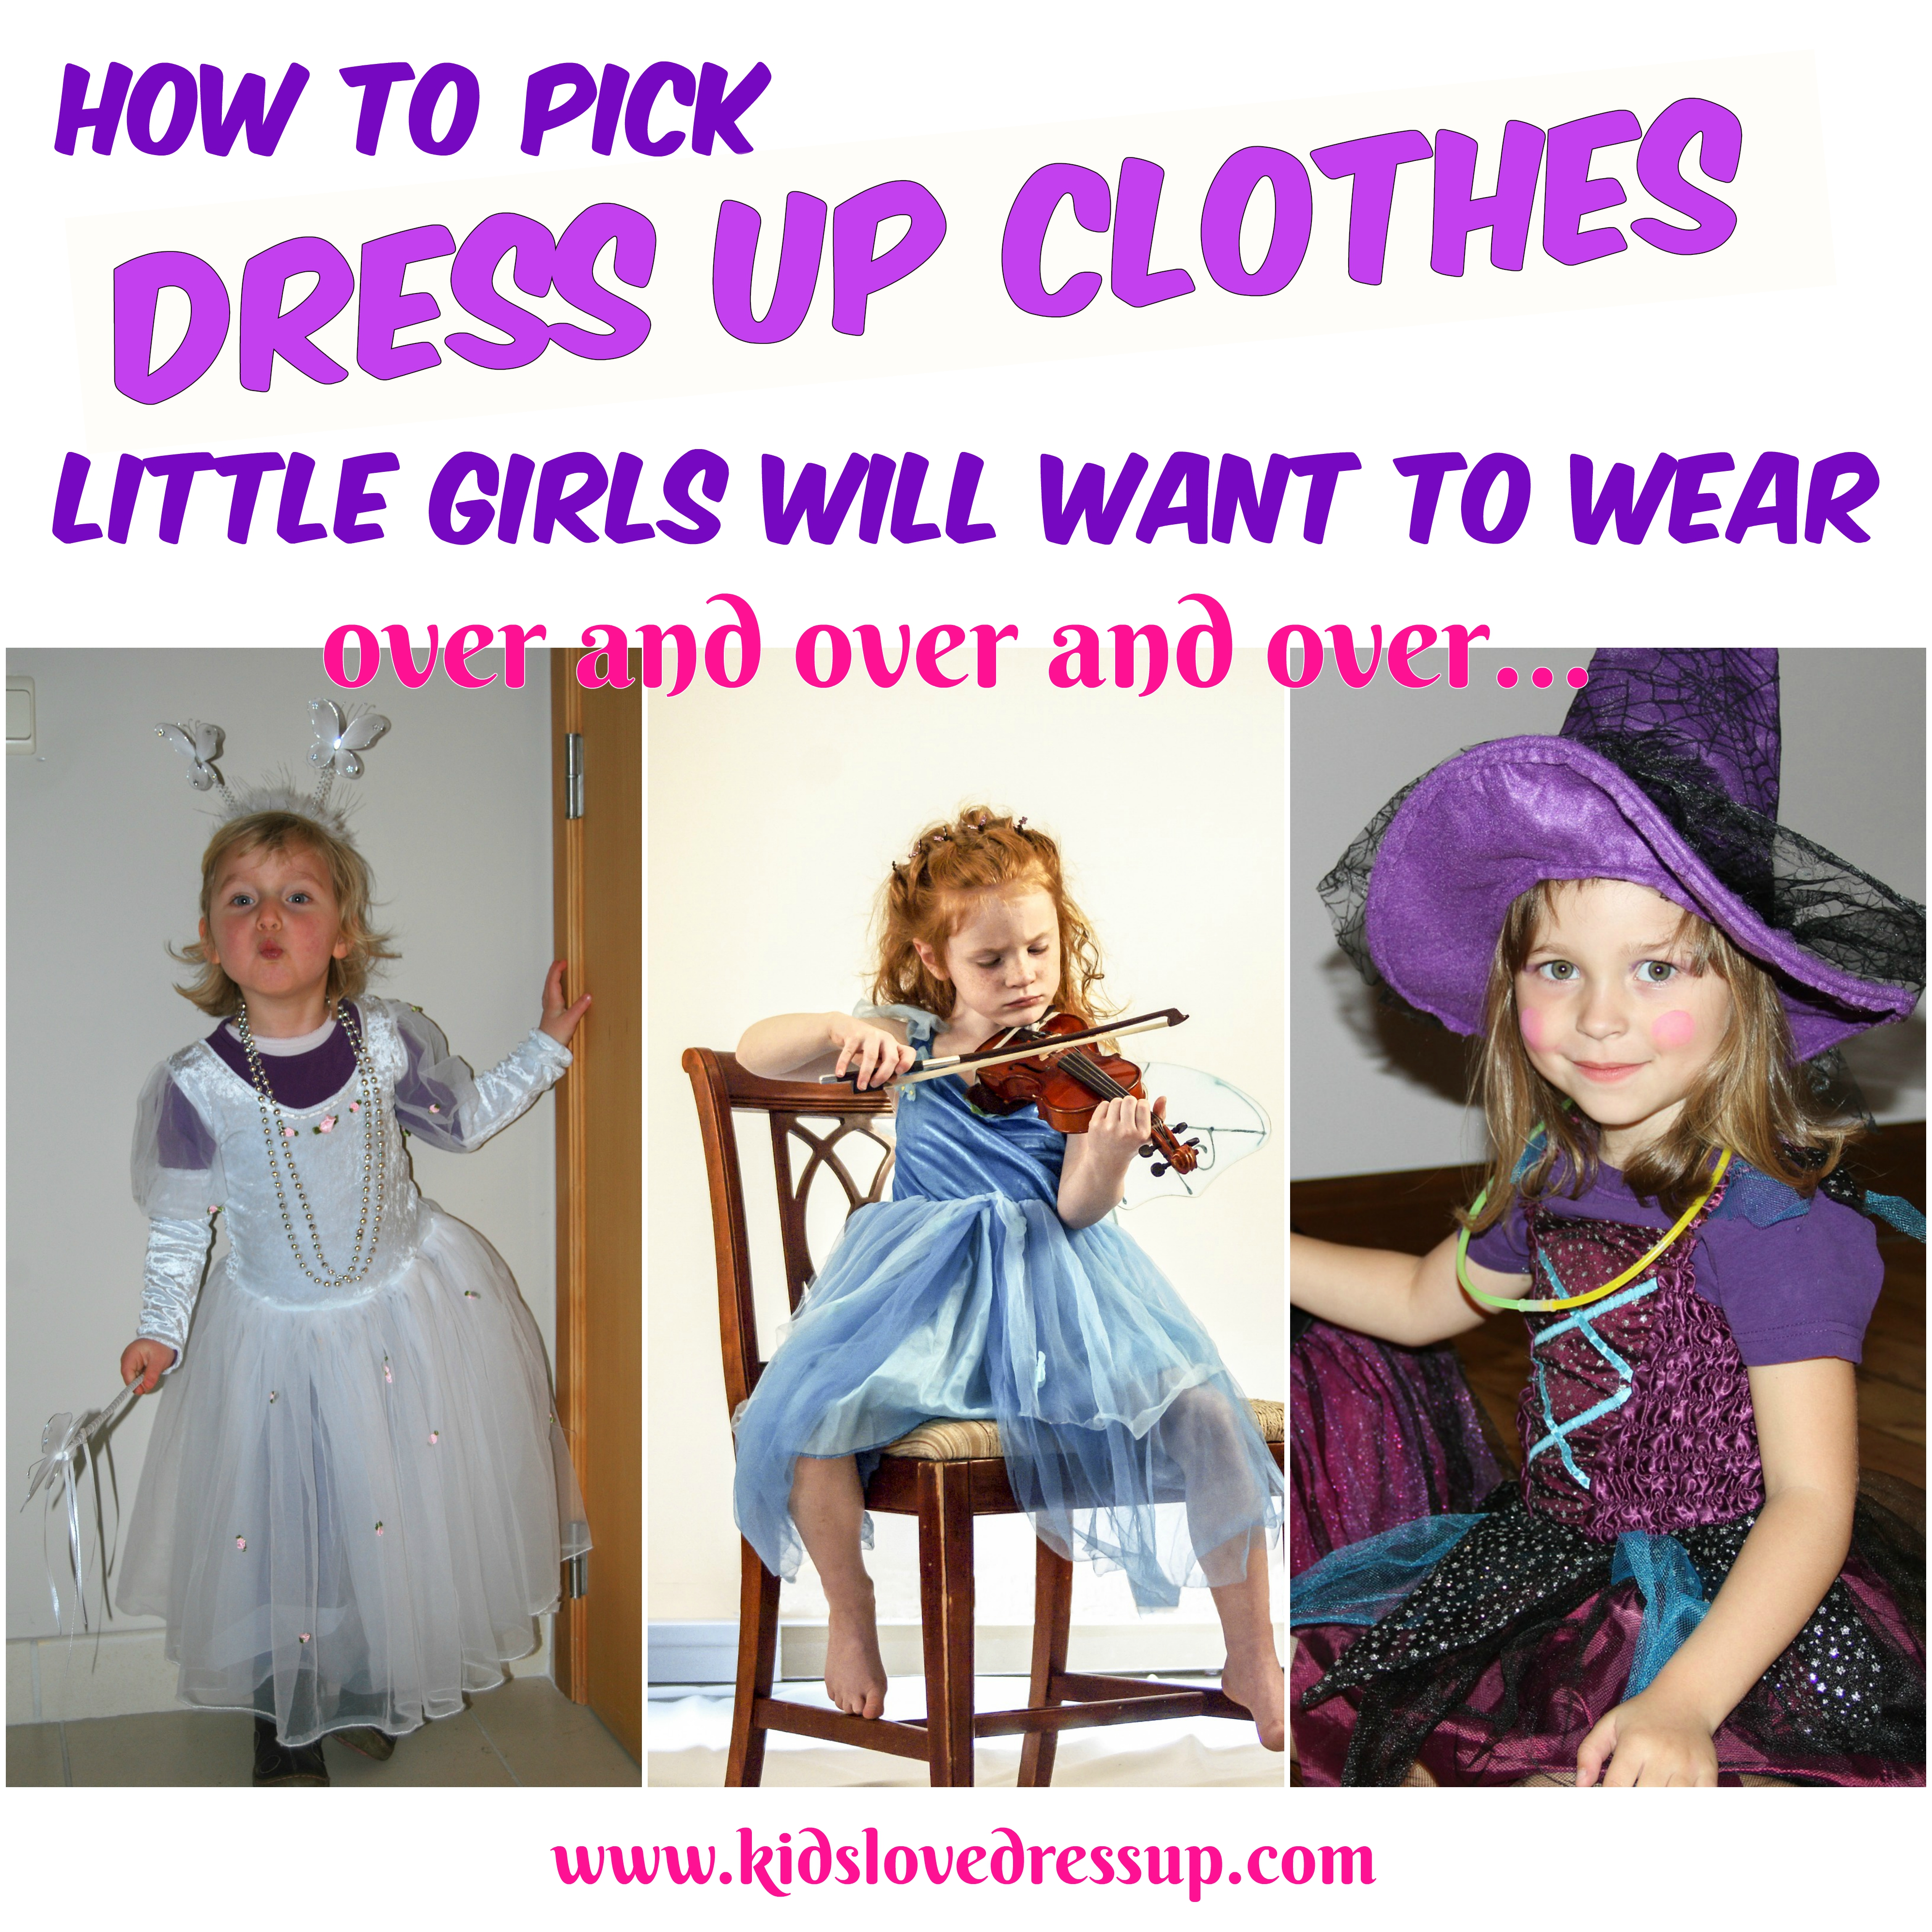 How To Pick Dress Up Clothes Little Girls Will Want To Wear Over and Over... www.kidslovedressup.com